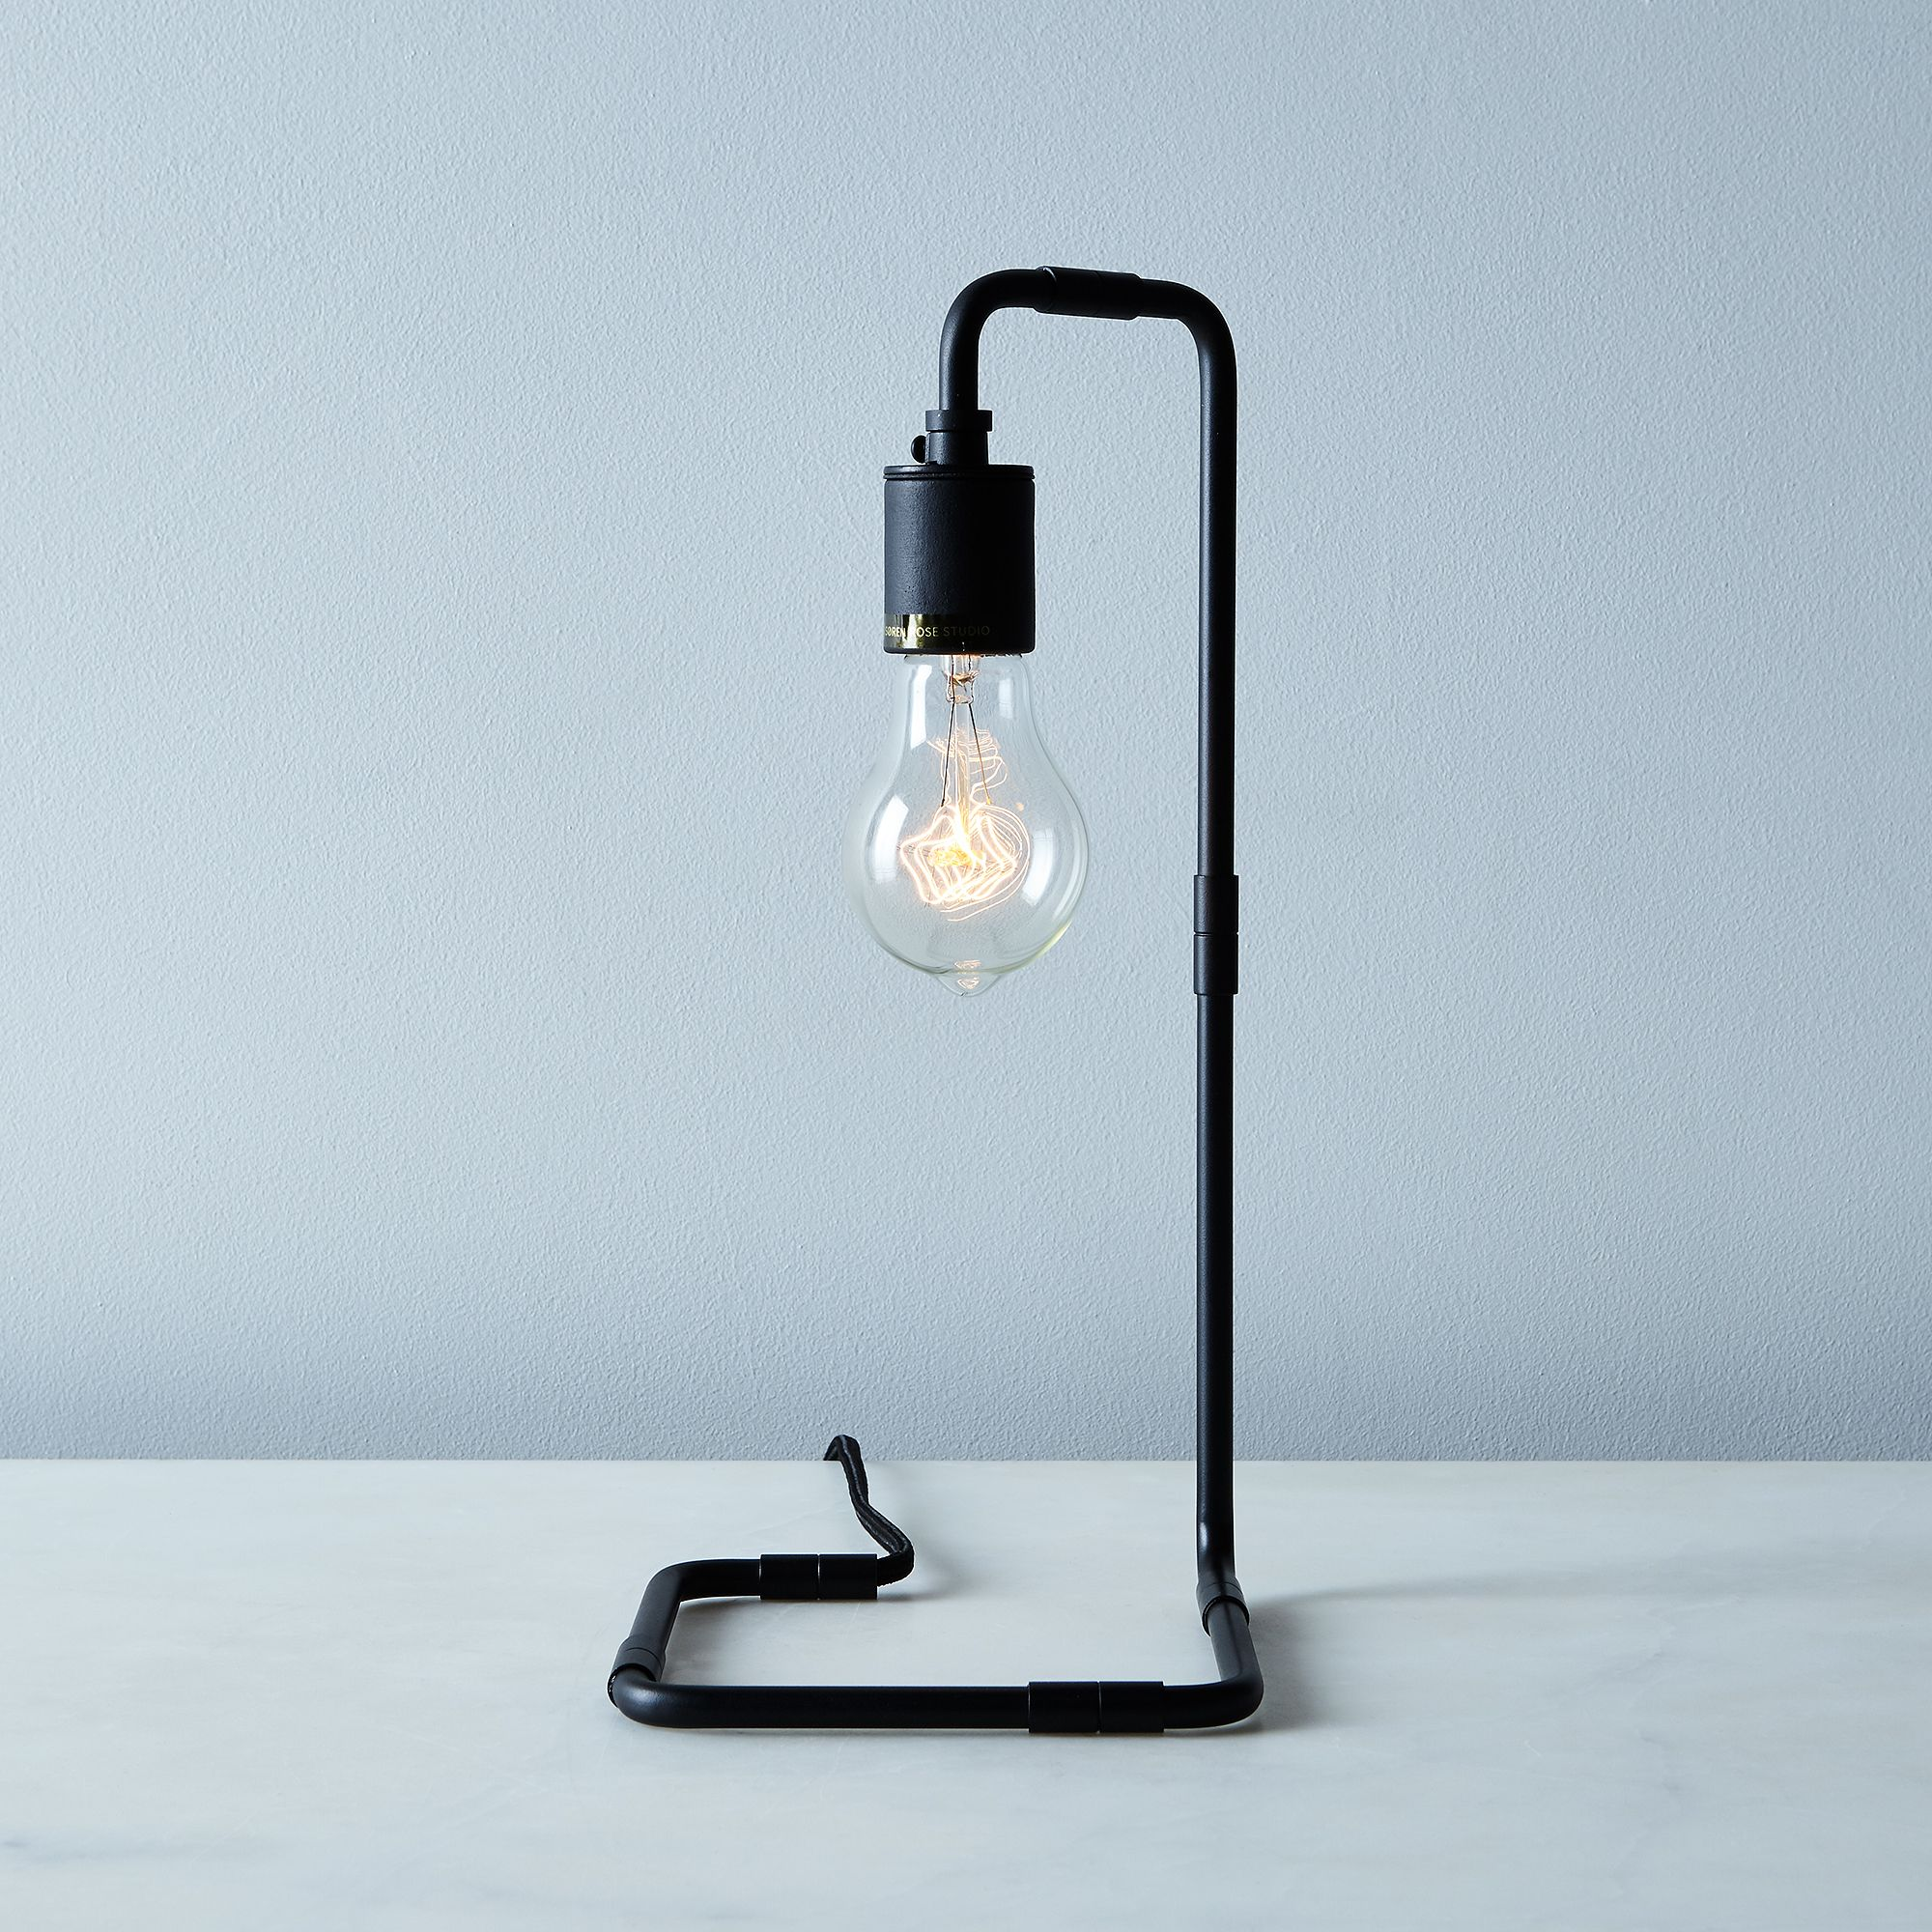 READE table lamp - Tribeca Series for MENU